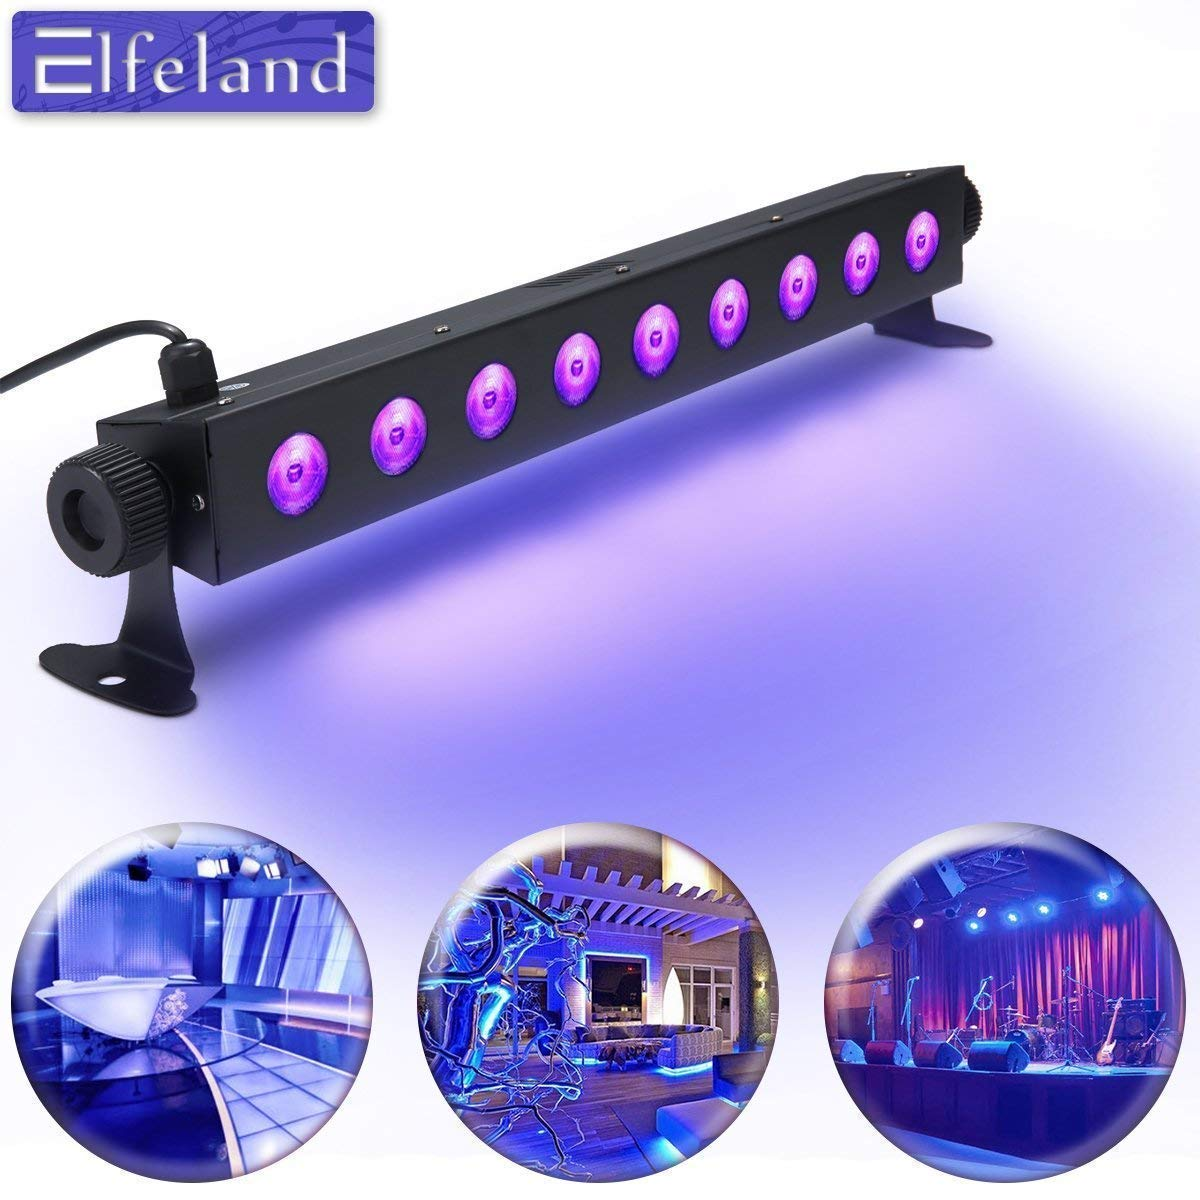 UV Black Light,Elfeland 27W 9LED UV Light Bar Disco Lights Stage Lights for UV Body Paint Blacklight Party Supplies Glow in The Dark Neon Glow Aquarium Curing (100-240V AC)